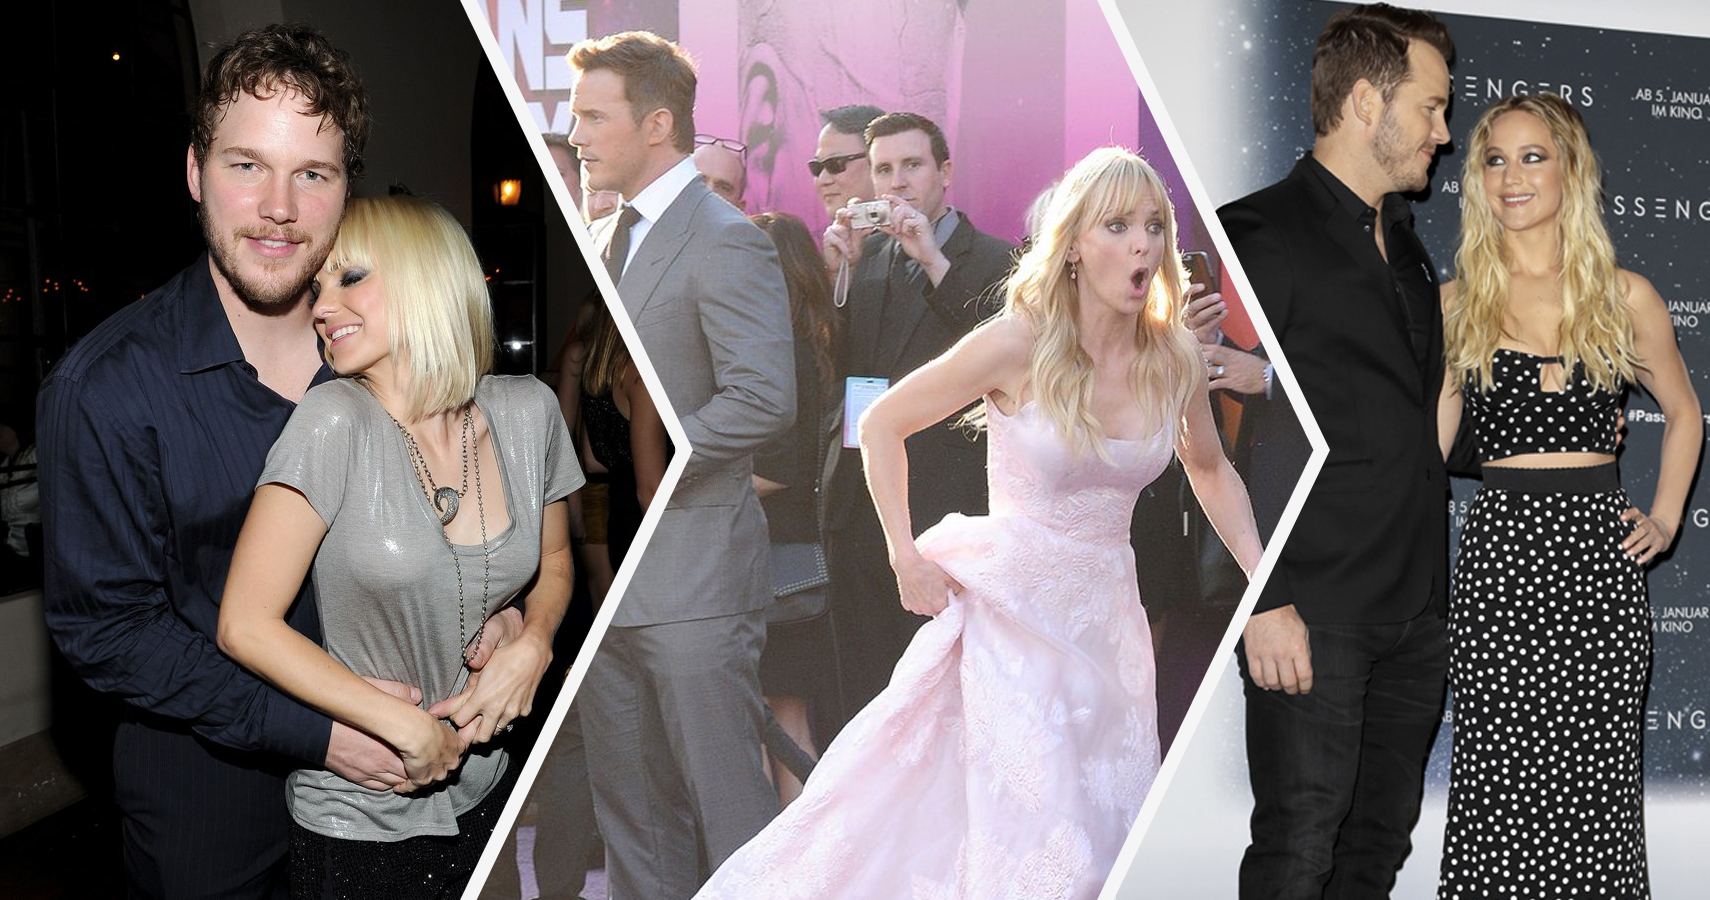 15 Crazy Secrets No One Knew About About Chris Pratt And ...